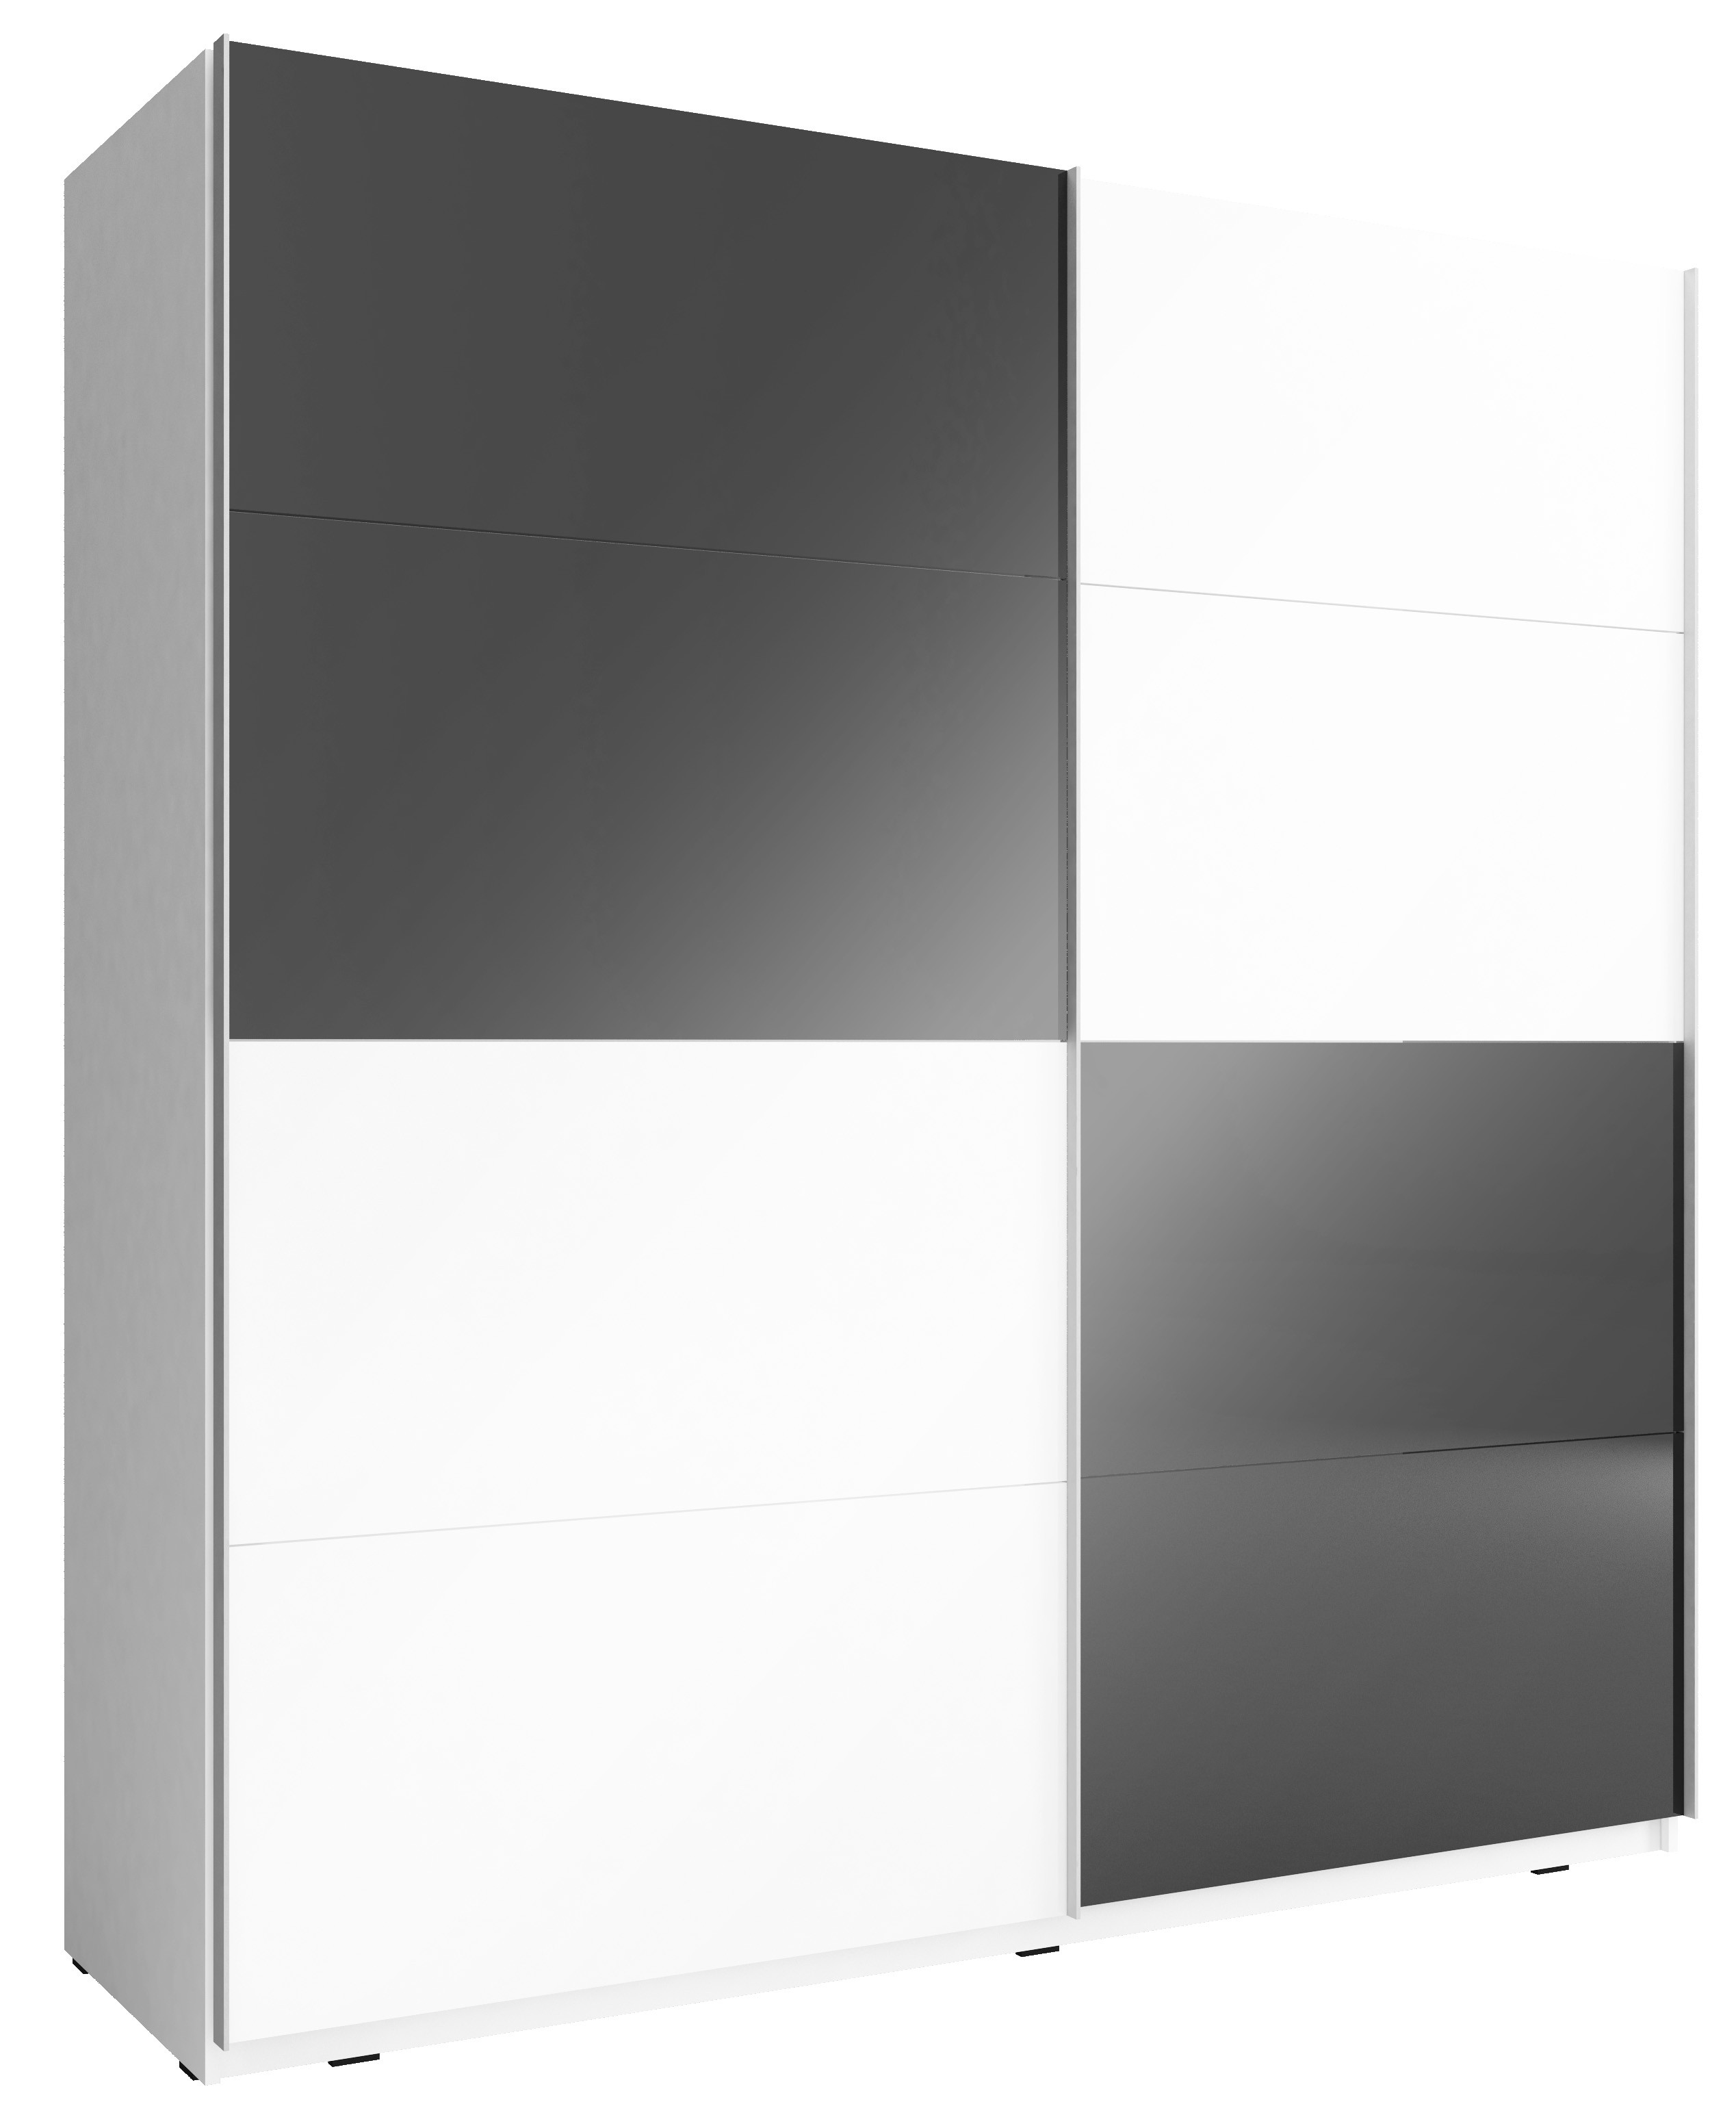 schwebet renschrank inkl innen ausstattung in weiss schwarz hochglanz. Black Bedroom Furniture Sets. Home Design Ideas